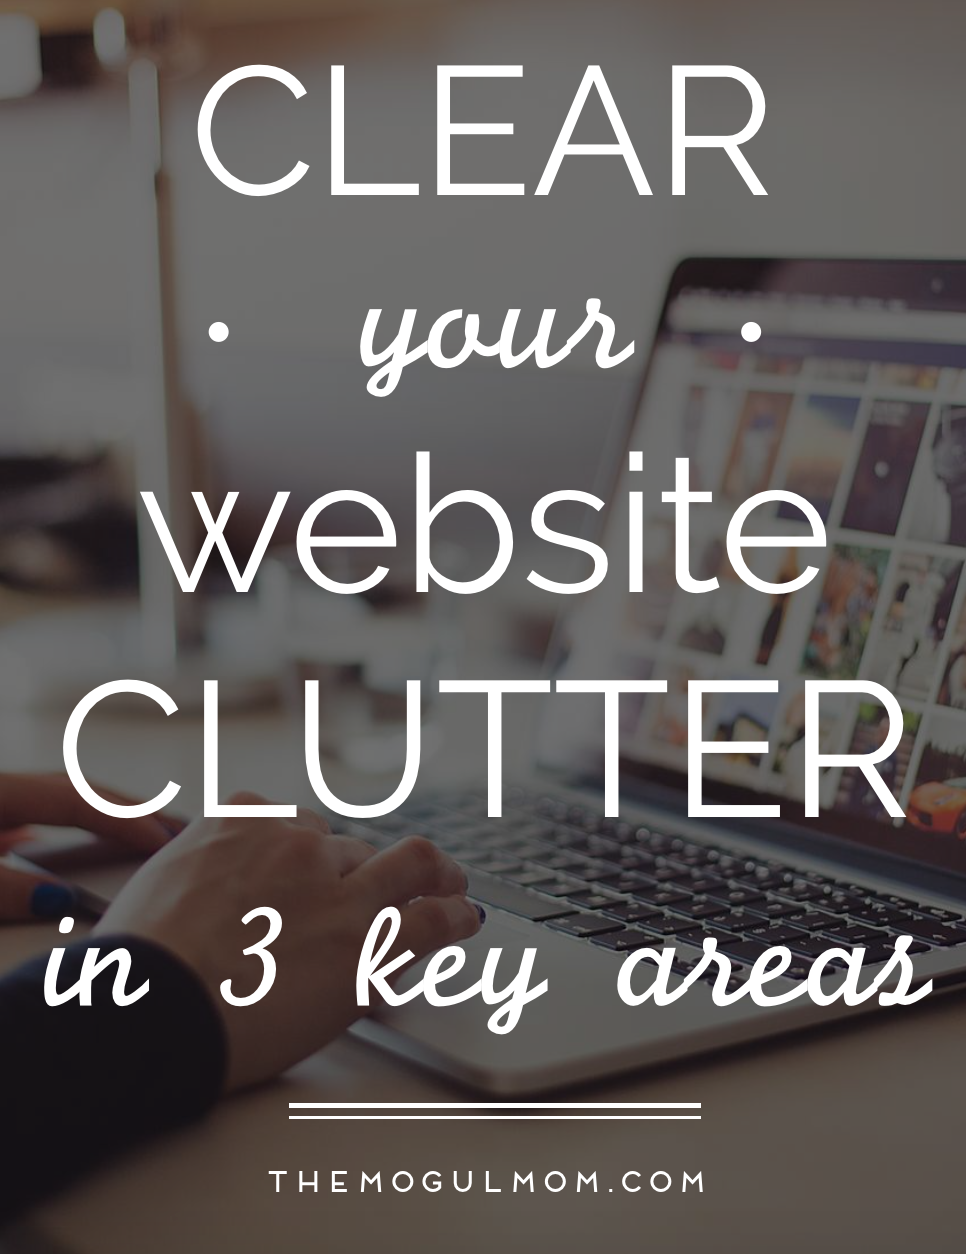 How To Clear Your Website Clutter In 3 Key Areas